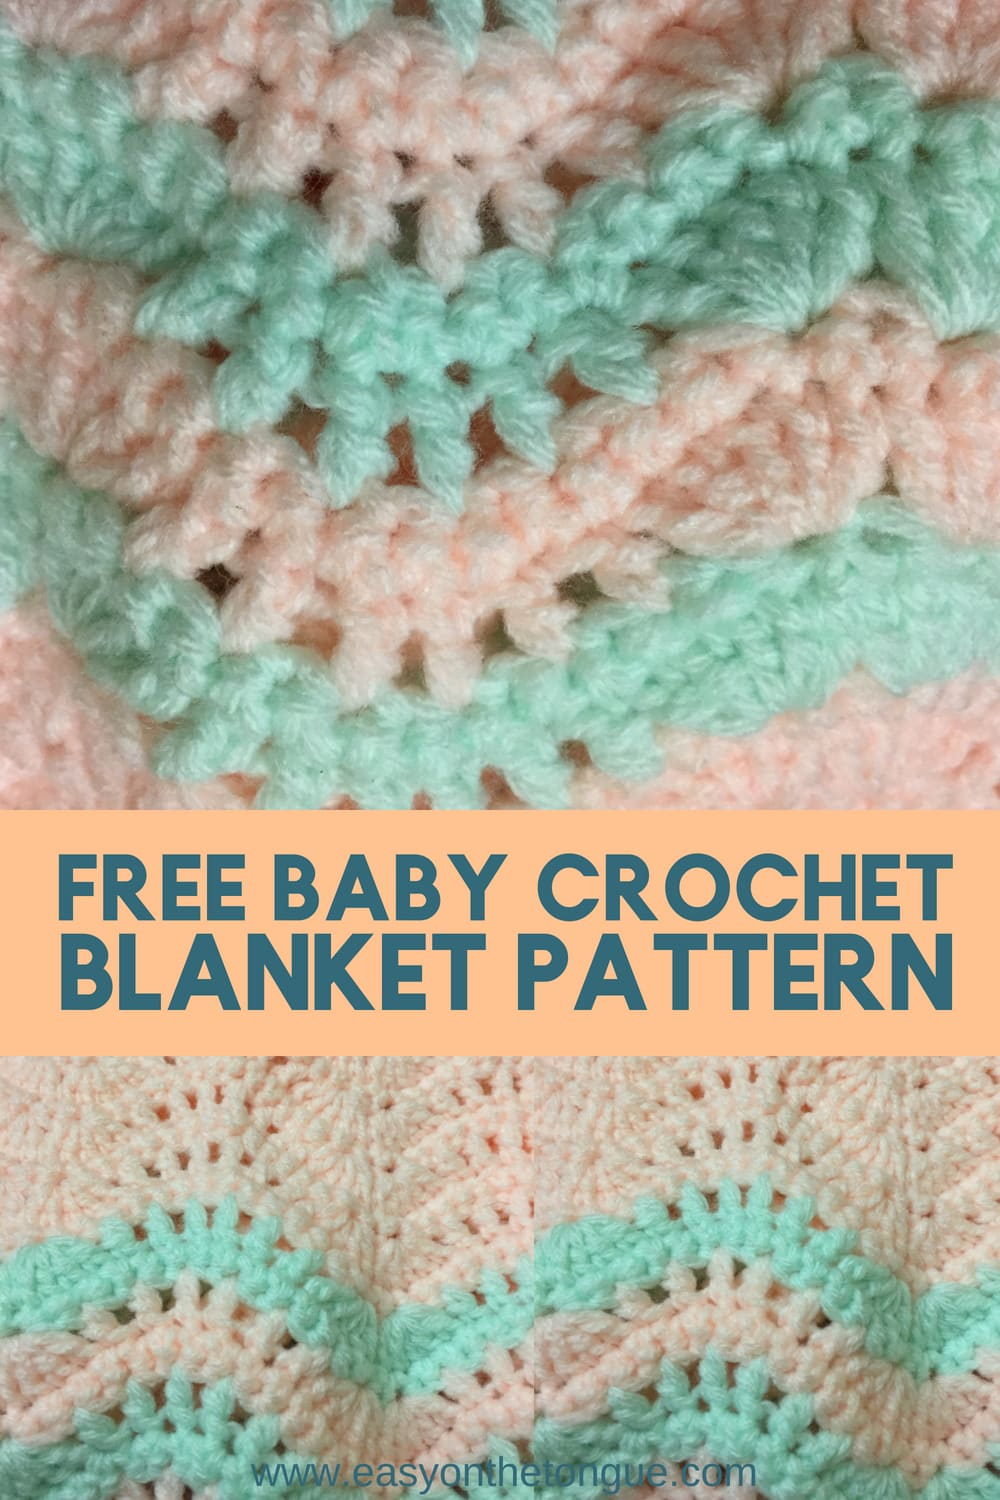 Quick And Easy Free Baby Blanket Crochet Pattern For New